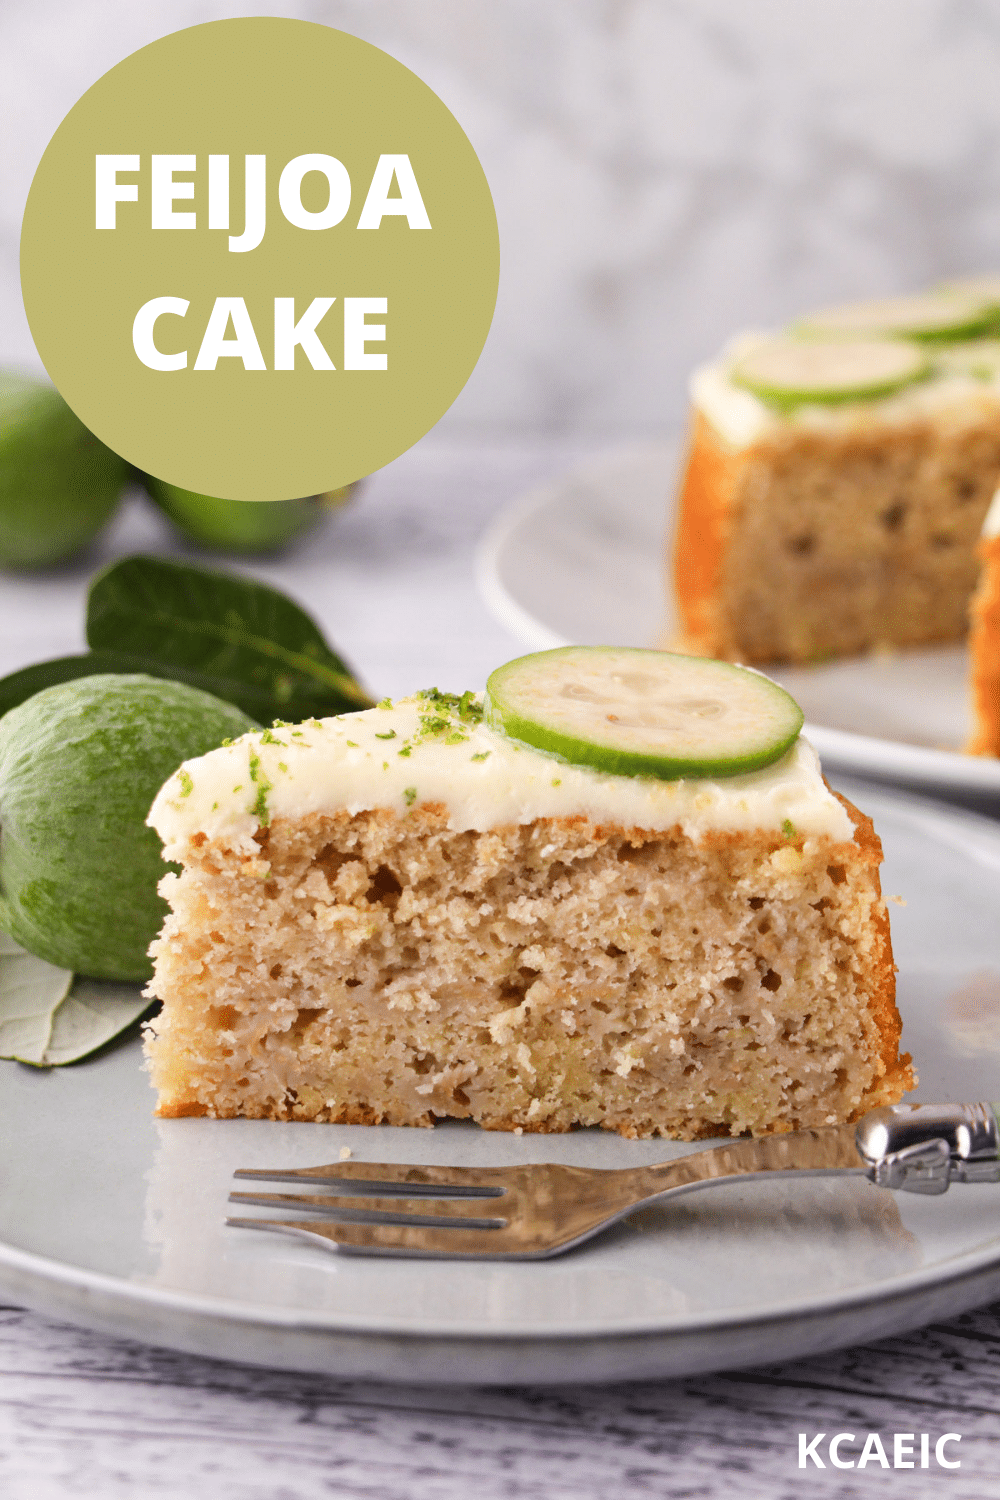 Slice of feijoa cake on a plate with a cake fork, the rest of the cake and fresh feijoas and leaves in the background, with text overlay, feijoa cake and KCAEIC.